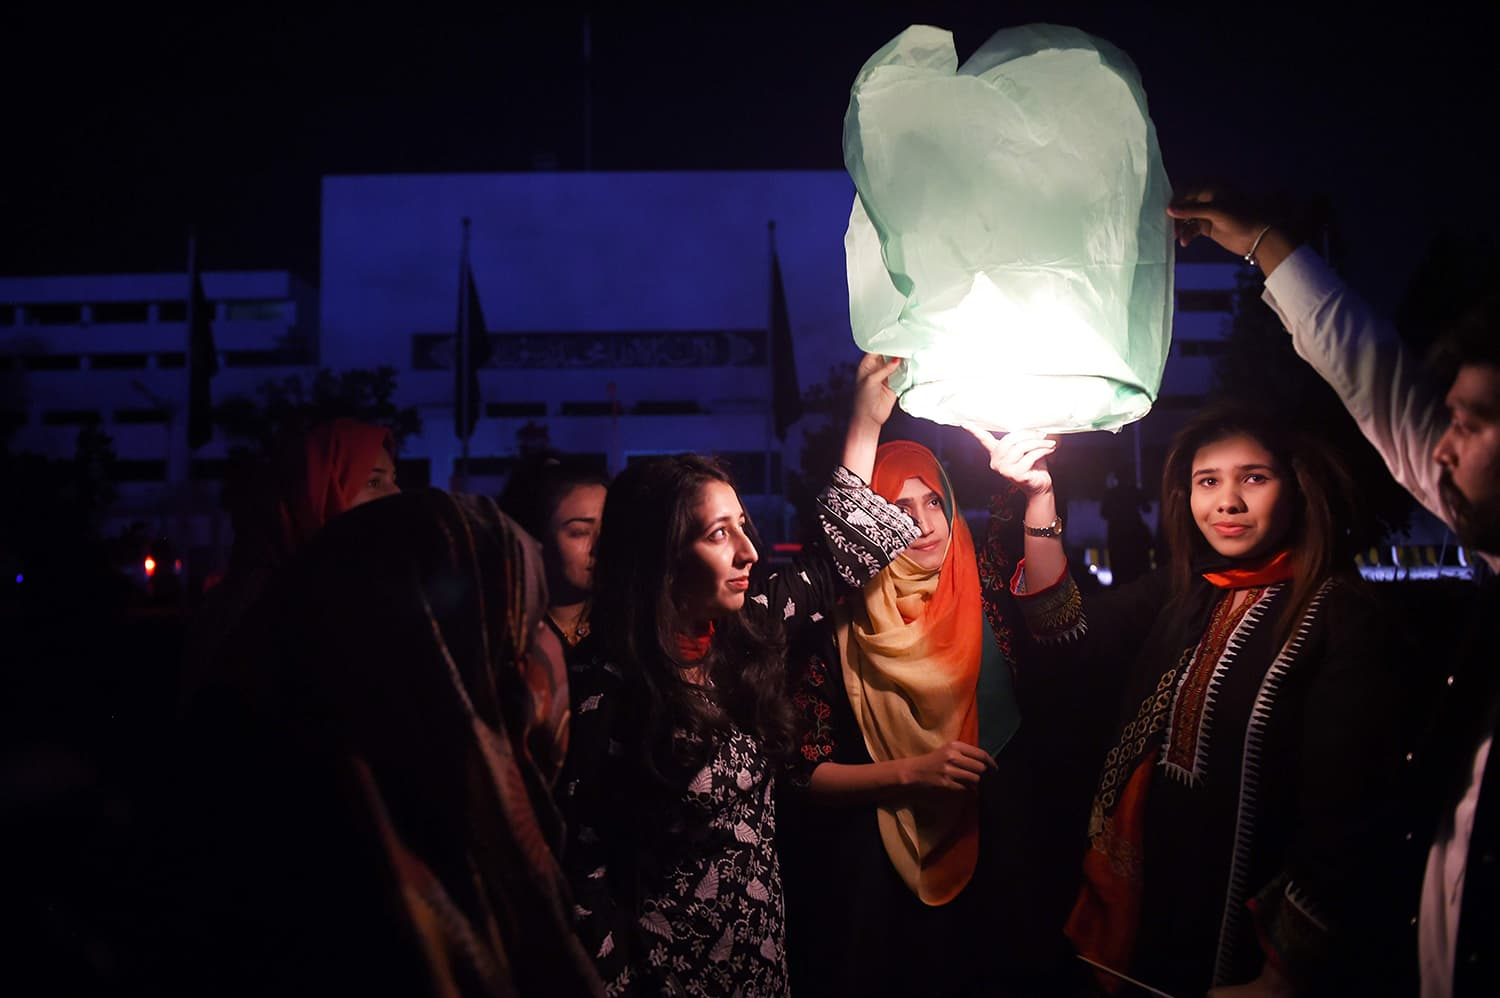 Girls release floating lanterns in front of Parliament House during Earth Hour in Islamabad. ─ AFP